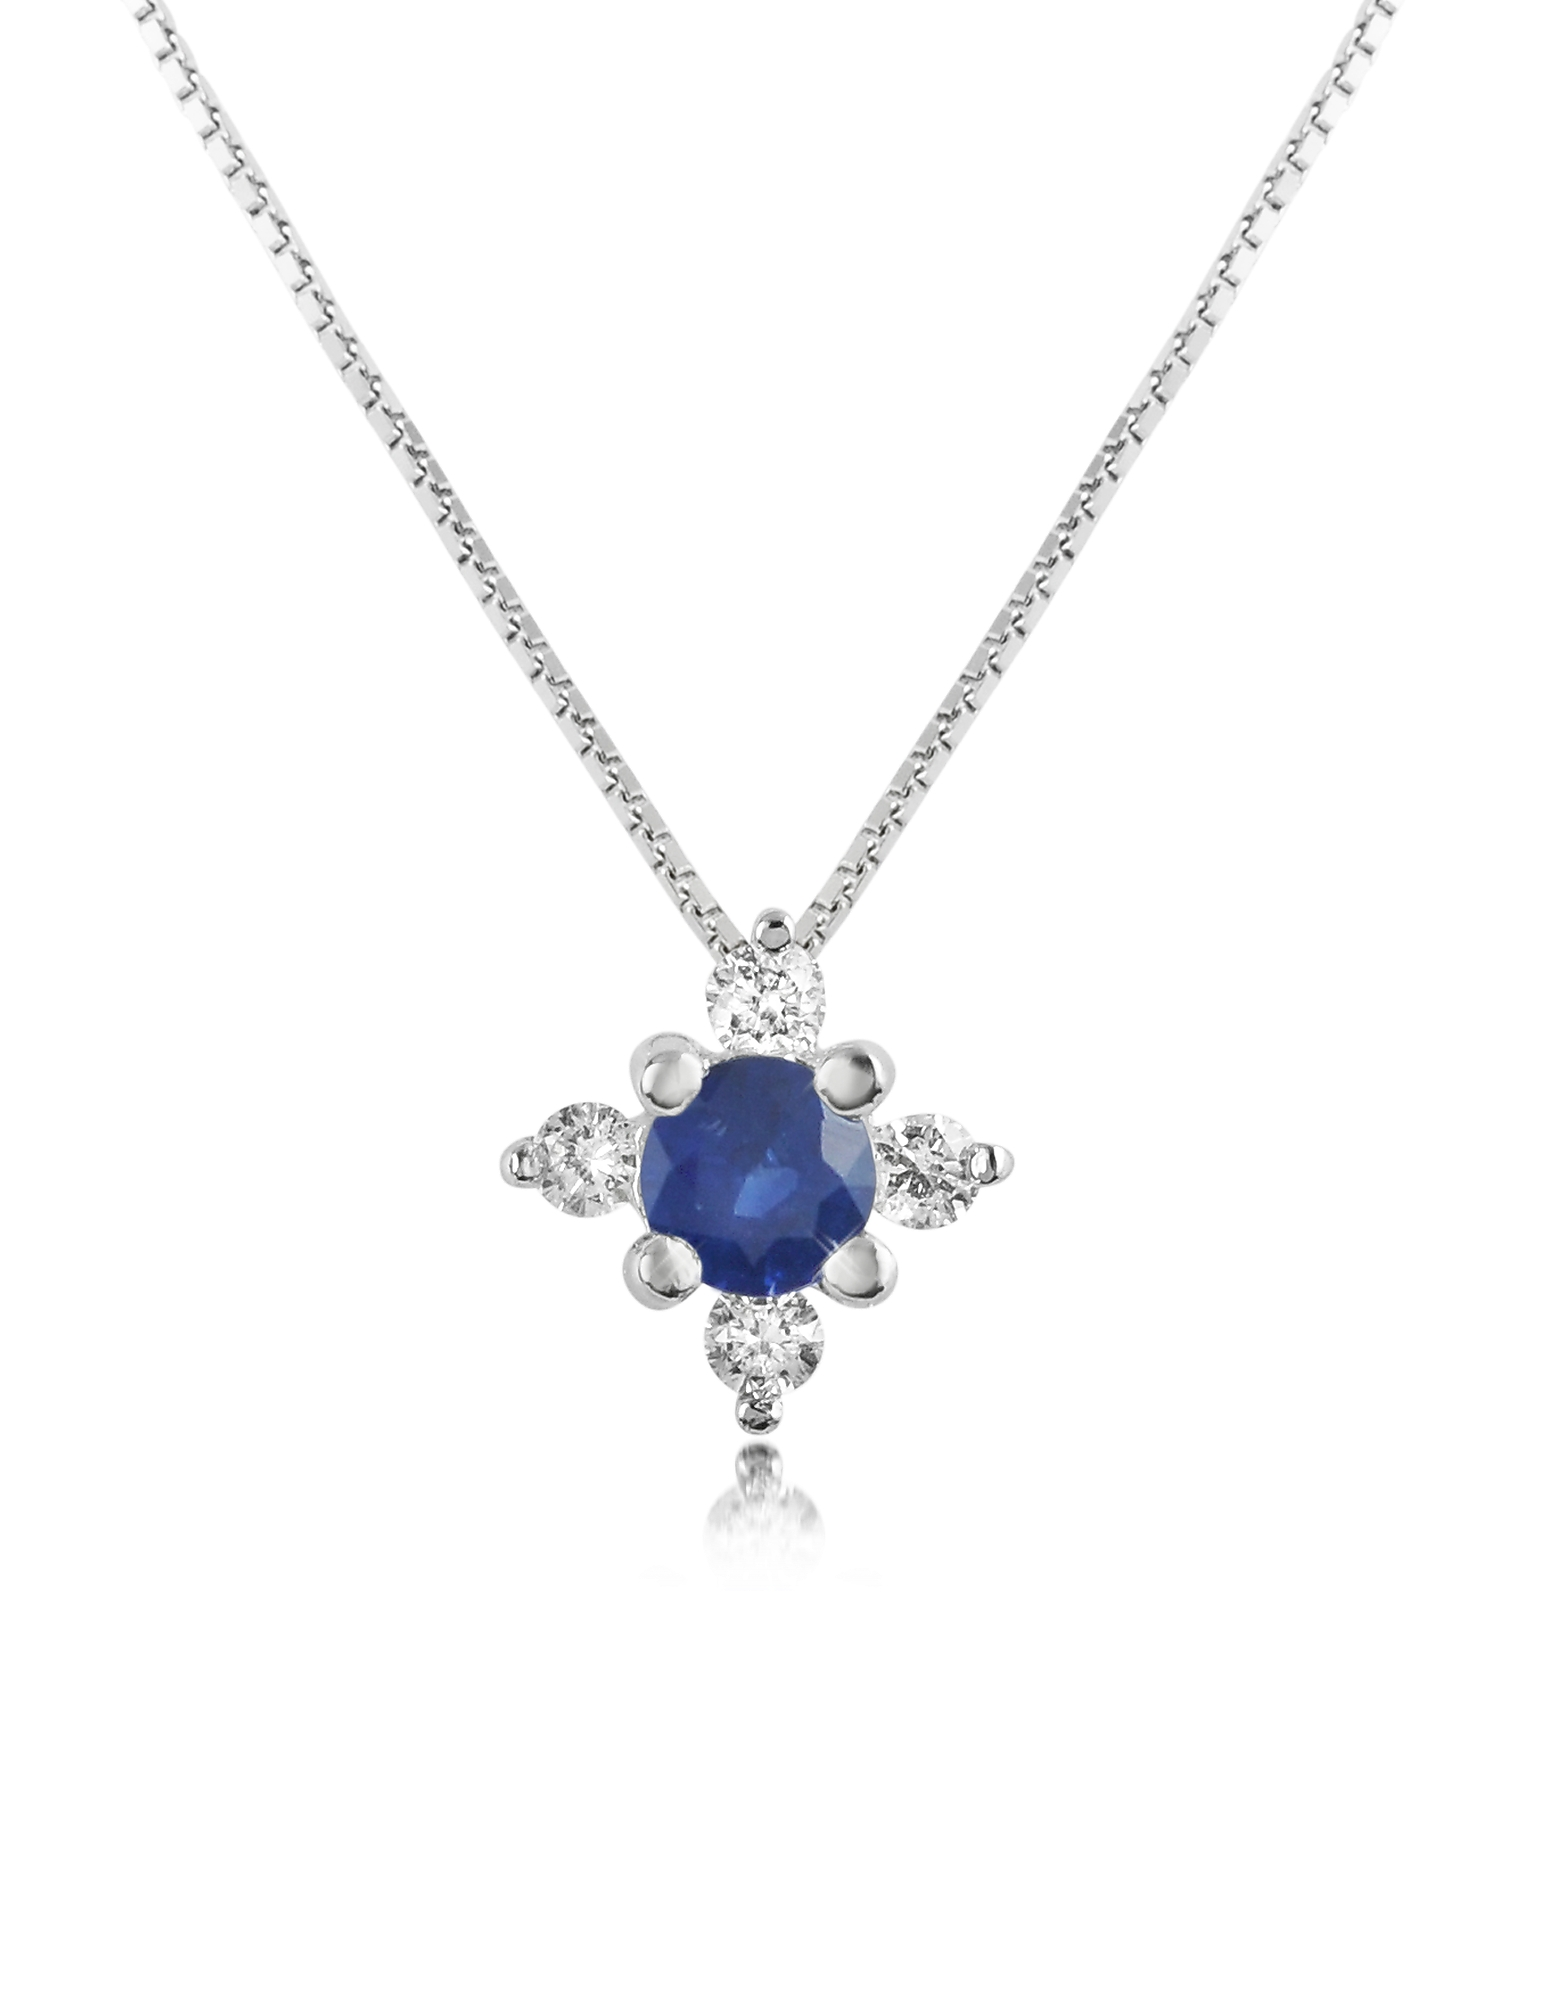 Incanto Royale Necklaces, Diamond and Sapphire Flower 18K Gold Pendant Necklace